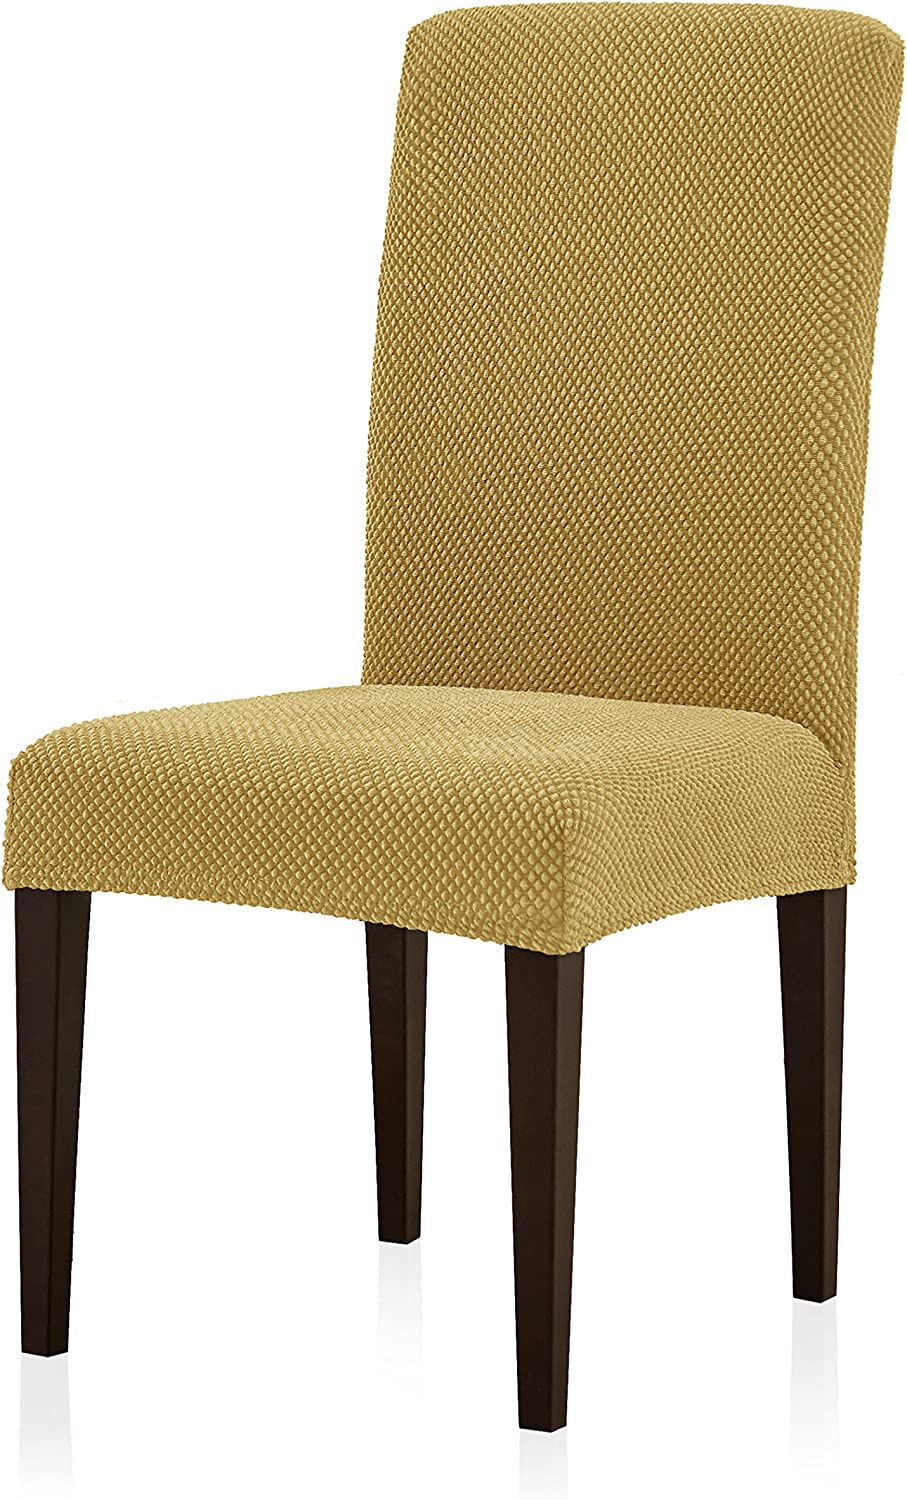 Subrtex Jacquard Dining Room Chair Slipcovers Sets Stretch Furniture Protector Covers for Armchair Removable Washable Elastic Parsons Seat Case for Restaurant Hotel Ceremony (2, Beige)